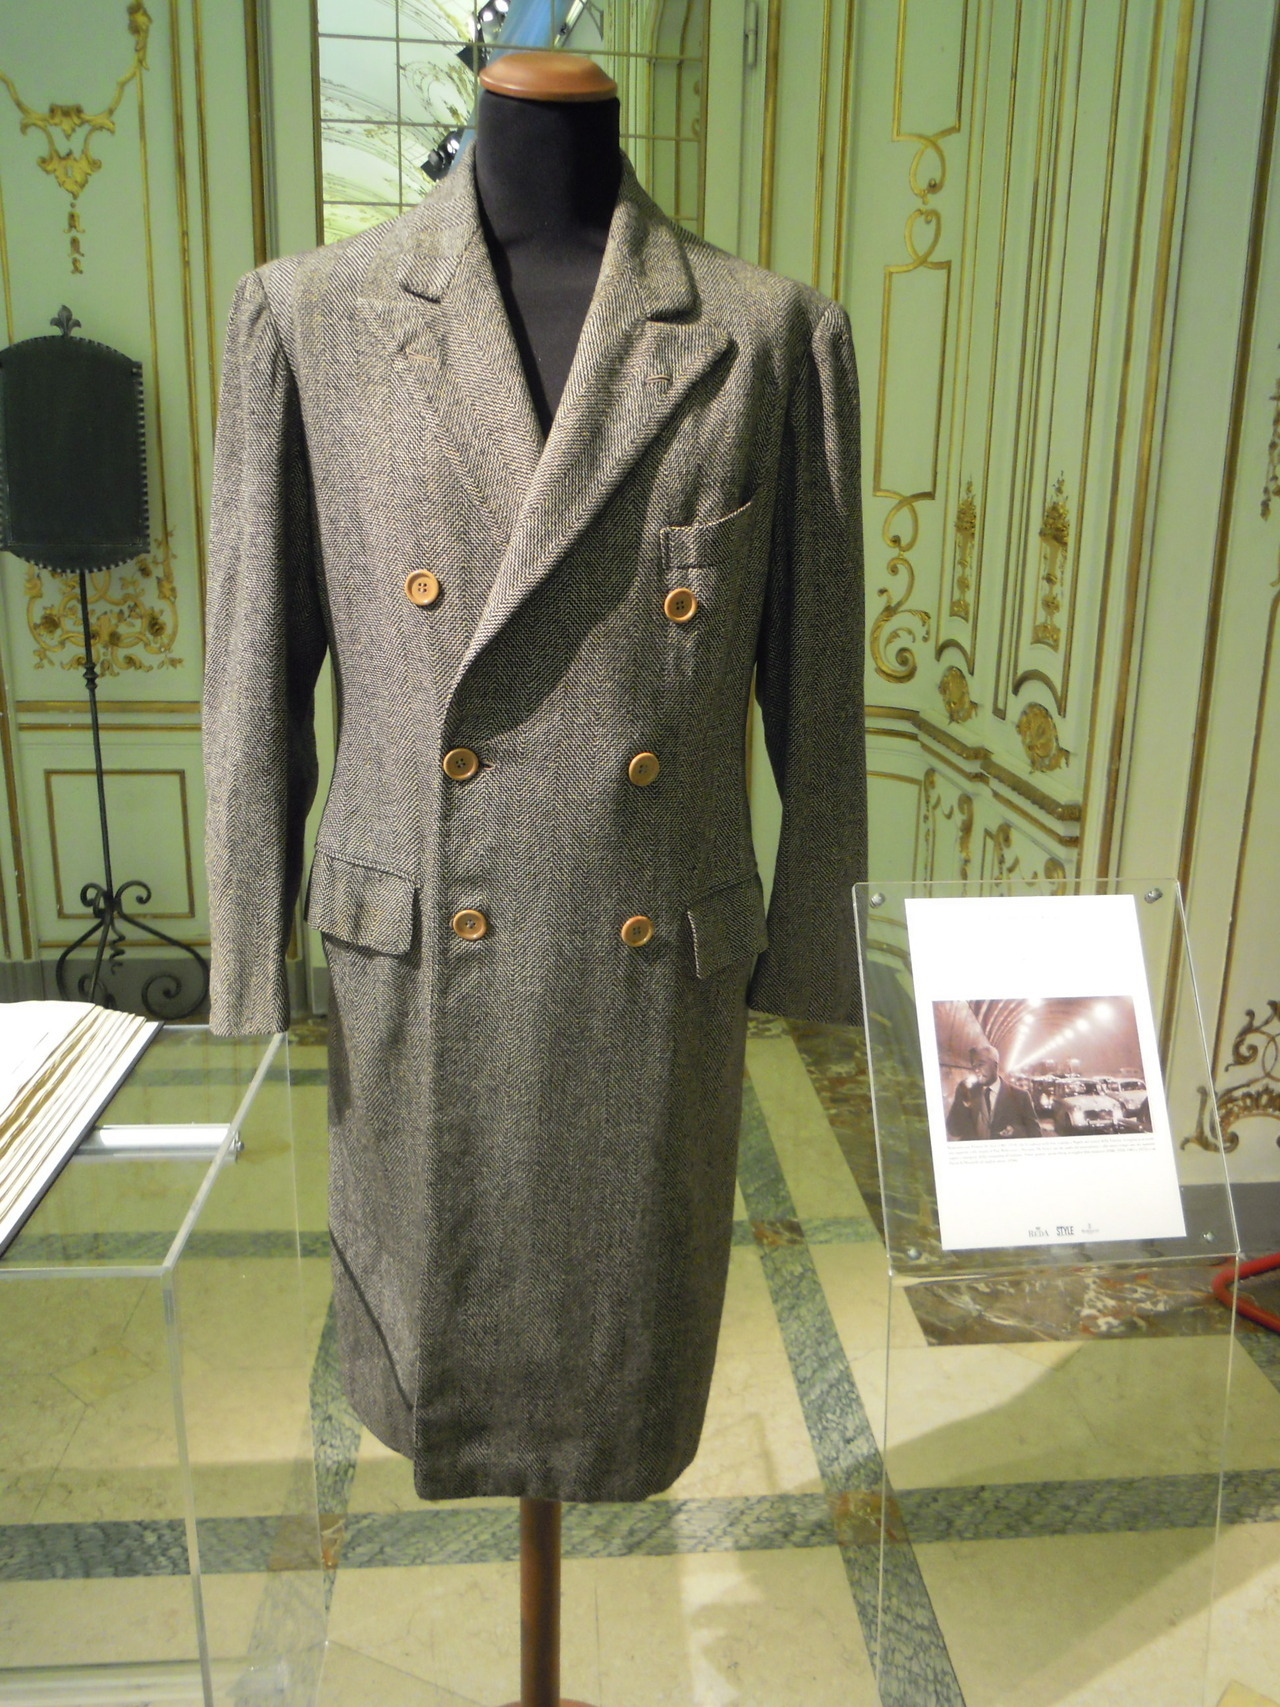 A wool unlined overcoat from the wardrobe of Vittorio De Sica, London House - Rubinacci, 1953. On display at the exhibition, Tessuti e sartoria: una storia italiana. Milan, Circolo della stampa.